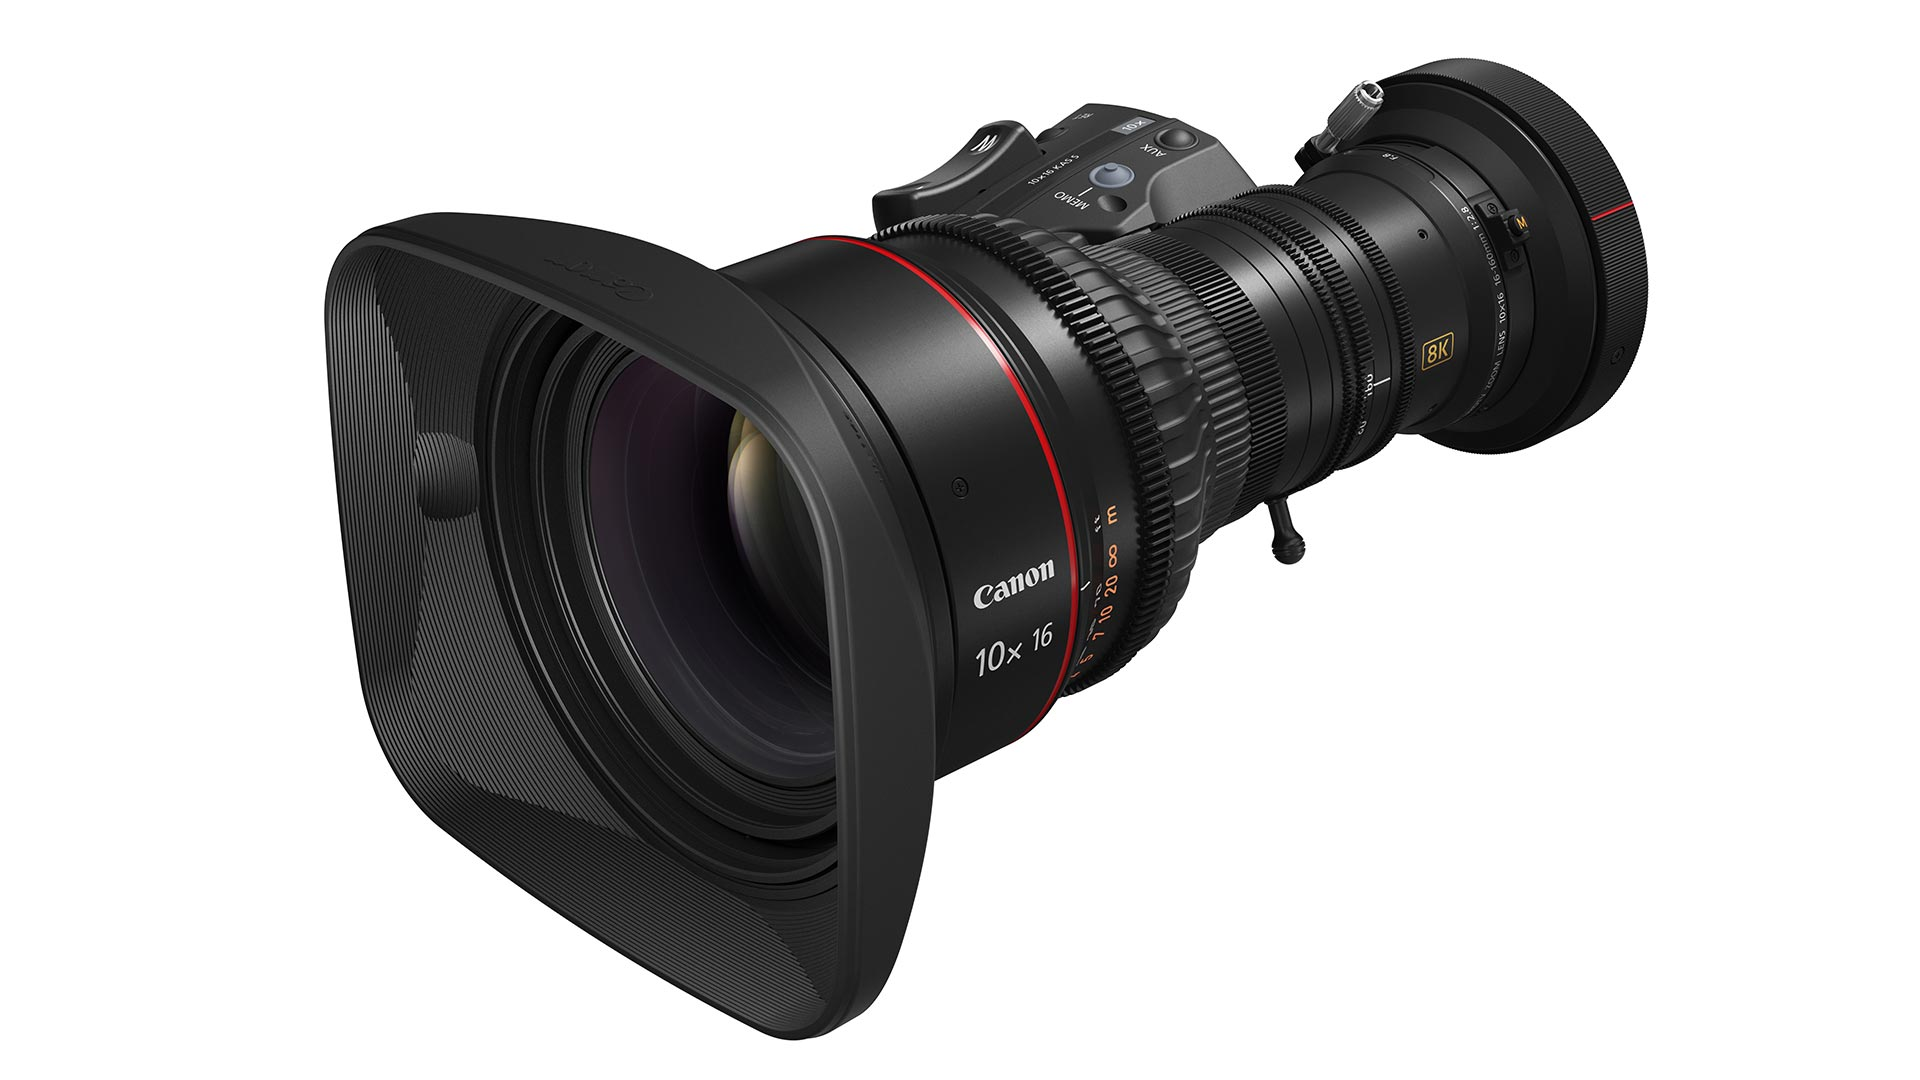 The new Canon 10x16 KAS S. Image: Canon.